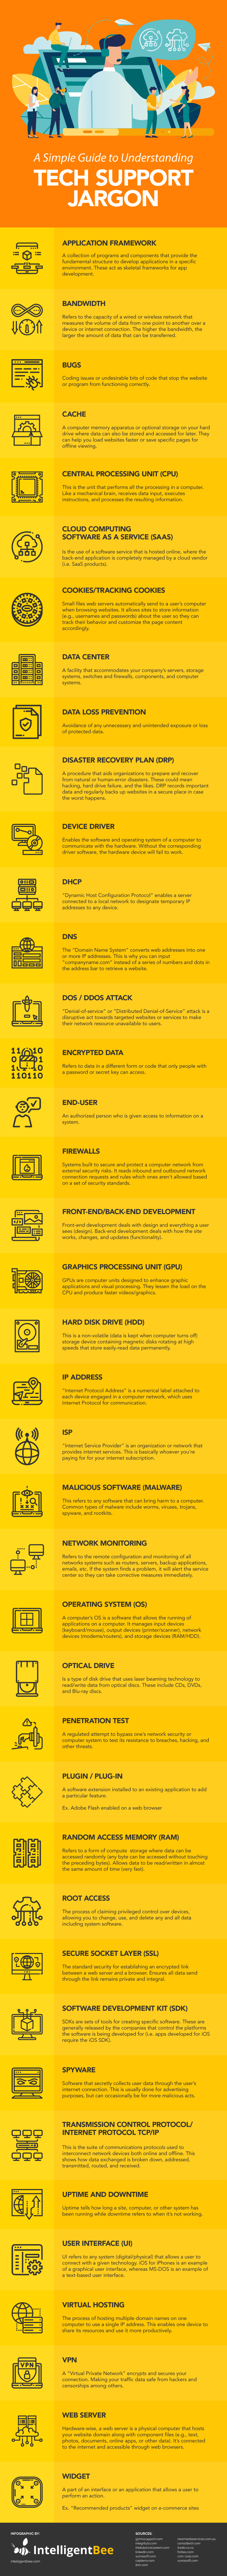 Simple Guide to Understanding Tech Support Jargon-Infographic